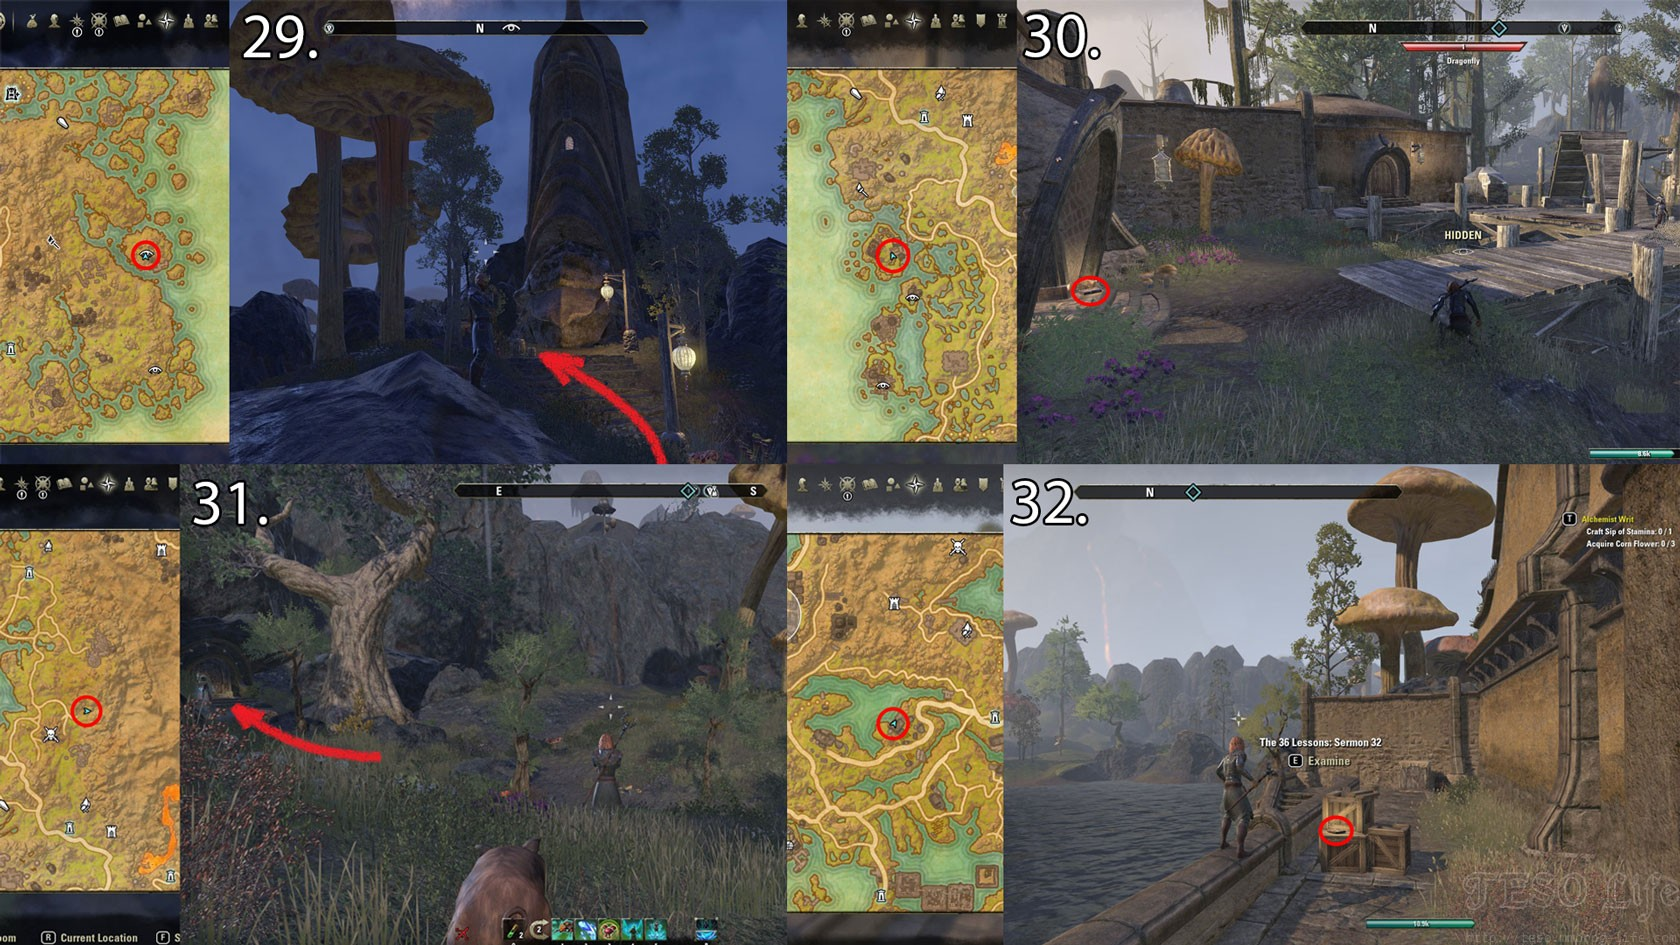 ESO Morrowind Sermon Book Locations in Vvardenfell